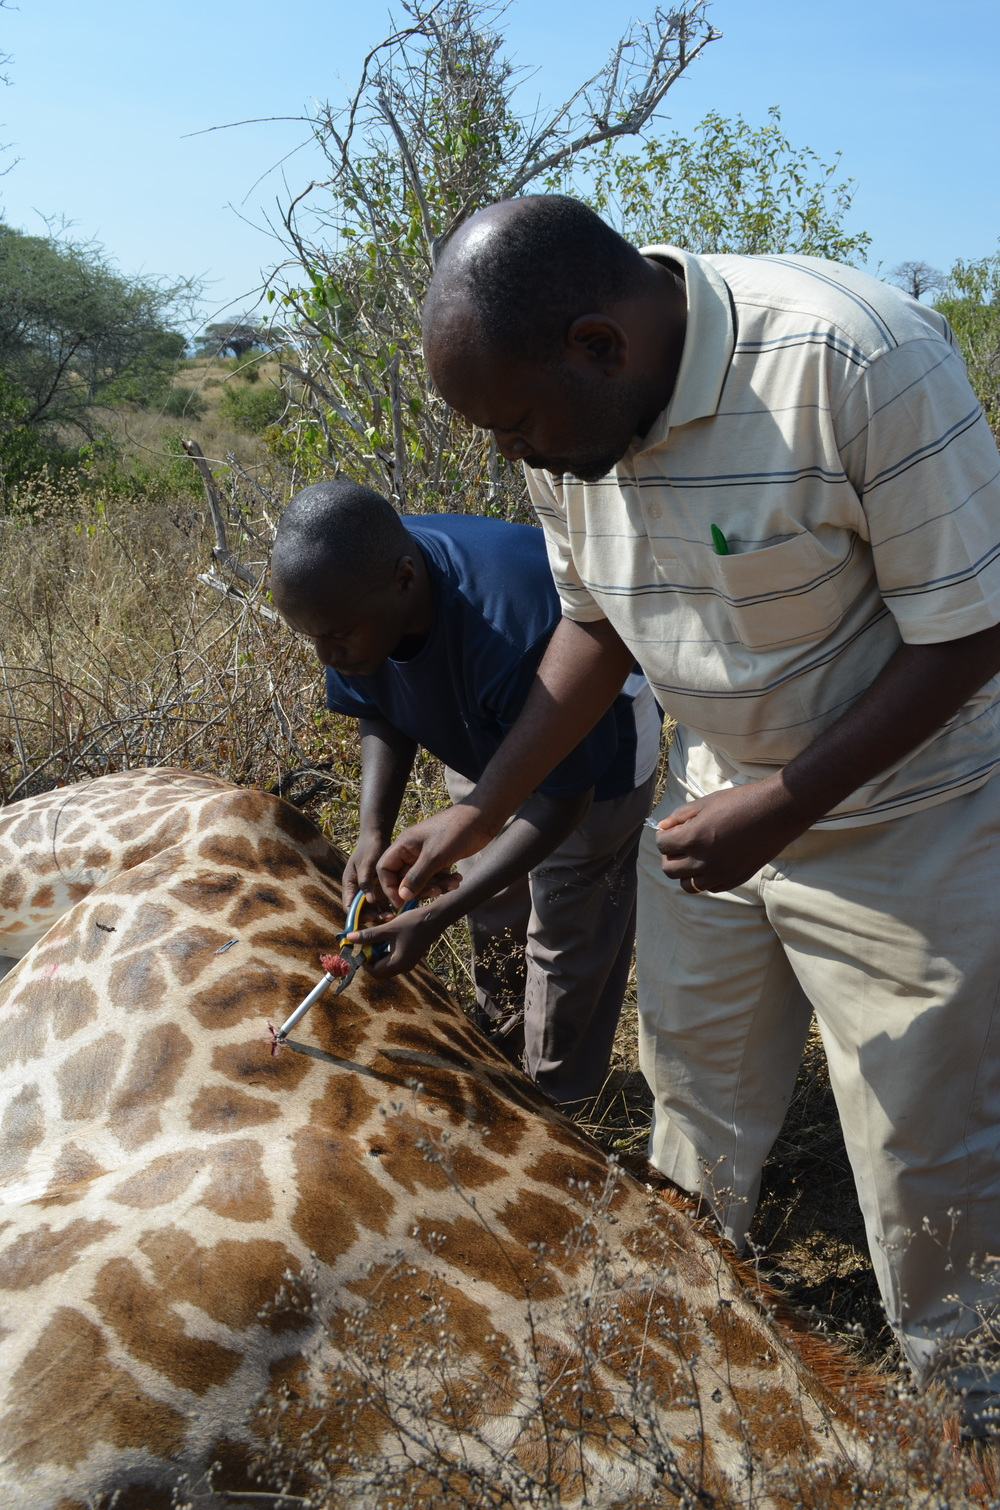 "Ruaha National Park veterinarian, Dr. Alex Epaphras (left), and Sokoine University of Agriculture veterinarian, Dr. Mpanduji, remove the dart from the giraffe's side. With the anesthetic drugs wearing off, these wildlife immobilization experts quickly wrap up the sampling and get the team safely out of the area. After a final check to make sure the giraffe is doing well, they inject a drug to reverse the anesthesia. Under many watchful eyes, the giraffe wakes up and heads back into the bush.                  Normal.dotm     0     0     1     71     409     University of California, Davis     3     1     502     12.0                          0     false             18 pt     18 pt     0     0         false     false     false                                                     /* Style Definitions */ table.MsoNormalTable 	{mso-style-name:""Table Normal""; 	mso-tstyle-rowband-size:0; 	mso-tstyle-colband-size:0; 	mso-style-noshow:yes; 	mso-style-parent:""""; 	mso-padding-alt:0in 5.4pt 0in 5.4pt; 	mso-para-margin:0in; 	mso-para-margin-bottom:.0001pt; 	mso-pagination:widow-orphan; 	font-size:12.0pt; 	font-family:""Times New Roman""; 	mso-ascii-font-family:Cambria; 	mso-ascii-theme-font:minor-latin; 	mso-fareast-font-family:""Times New Roman""; 	mso-fareast-theme-font:minor-fareast; 	mso-hansi-font-family:Cambria; 	mso-hansi-theme-font:minor-latin;}"